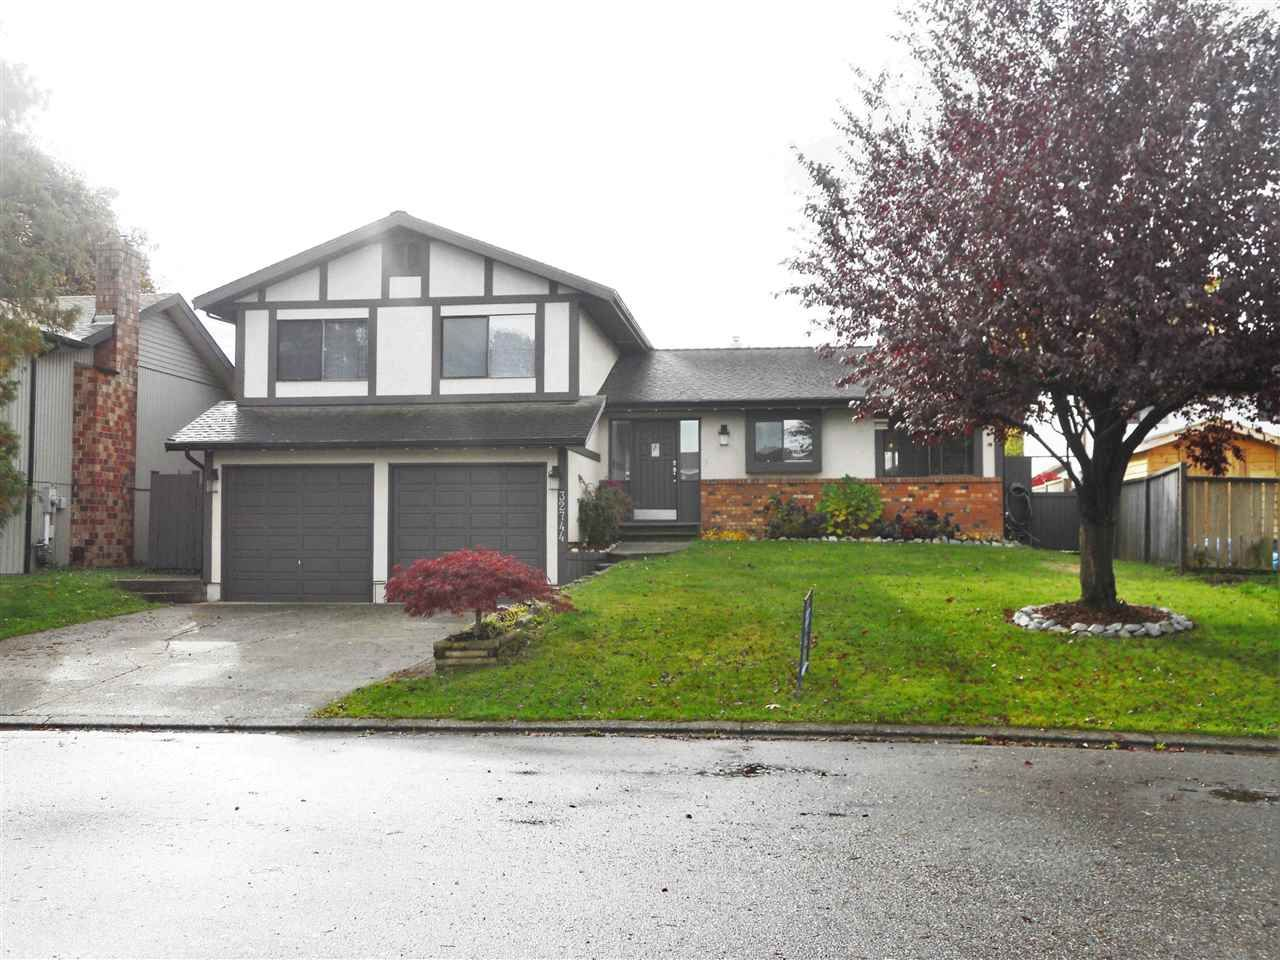 """Main Photo: 32744 NANAIMO Close in Abbotsford: Central Abbotsford House for sale in """"Parkside Estates"""" : MLS®# R2117656"""